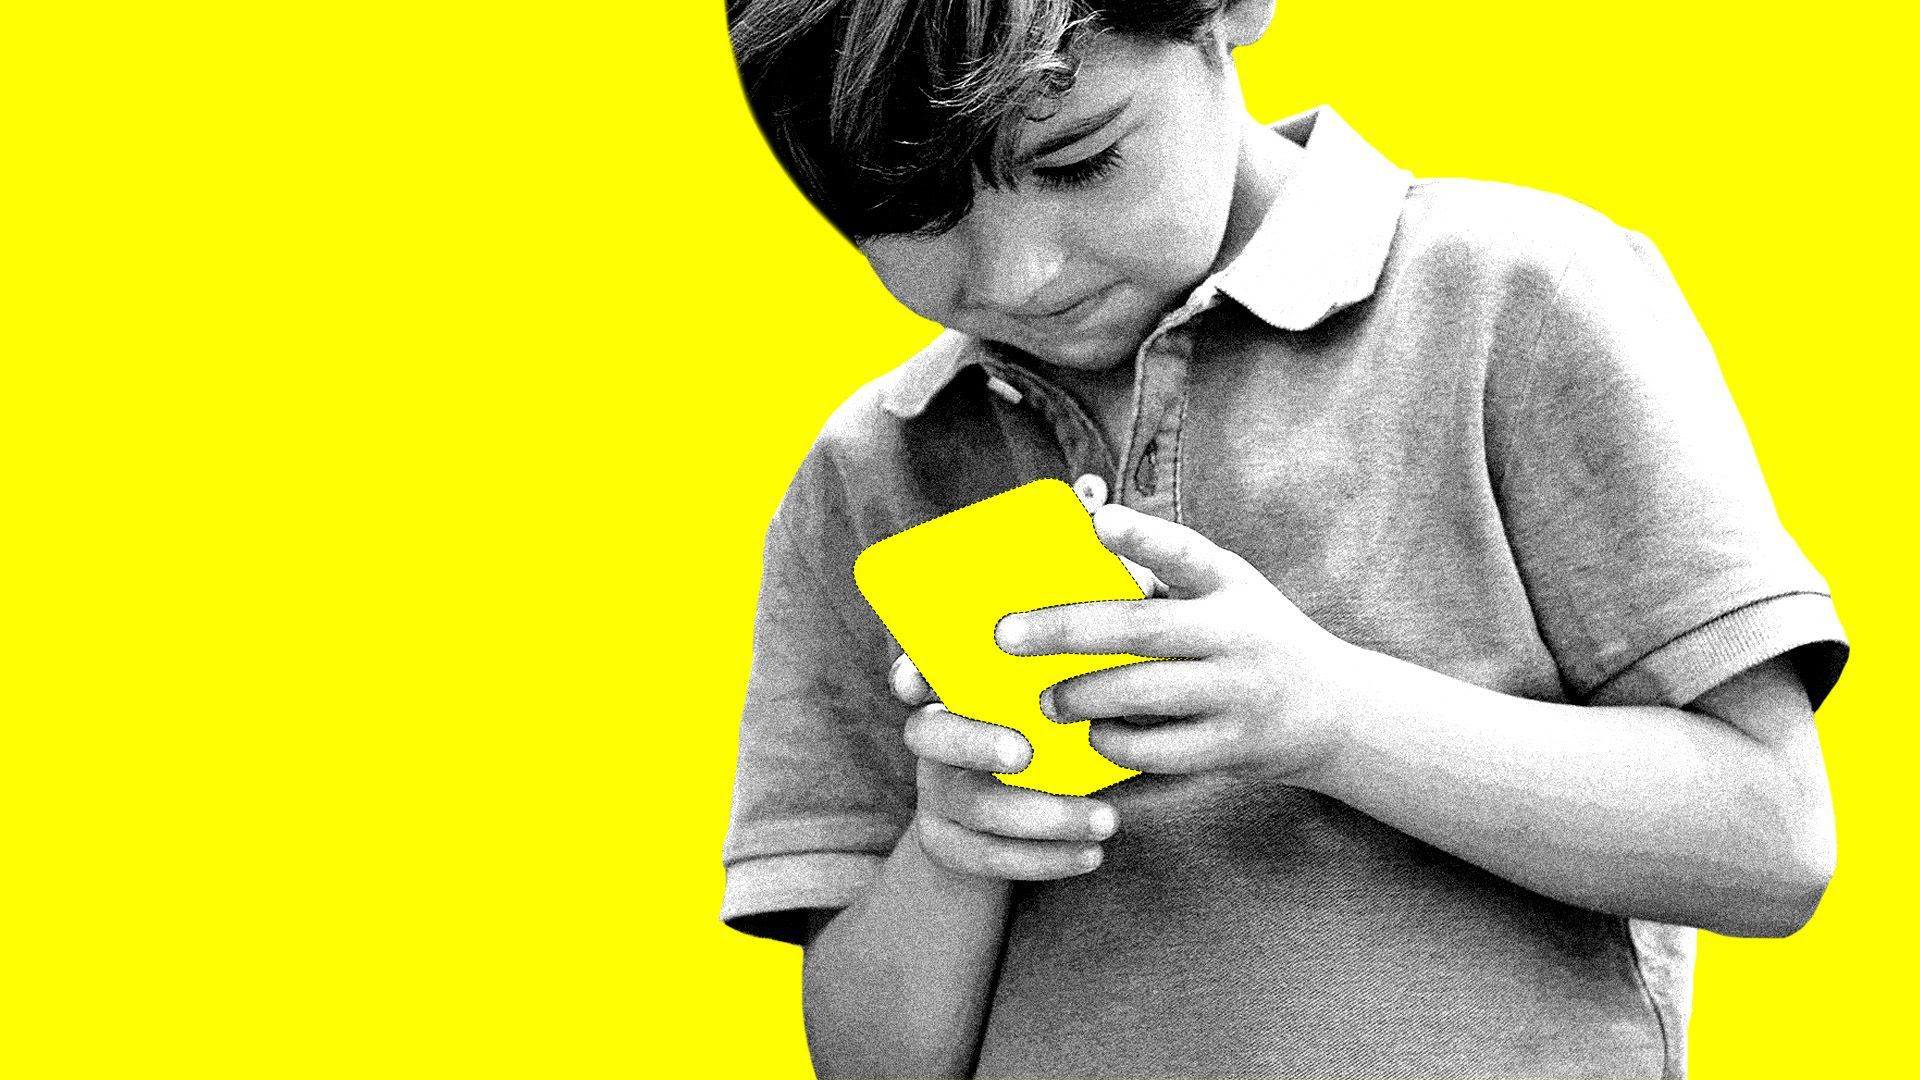 An illustration of a kid playing on a smartphone